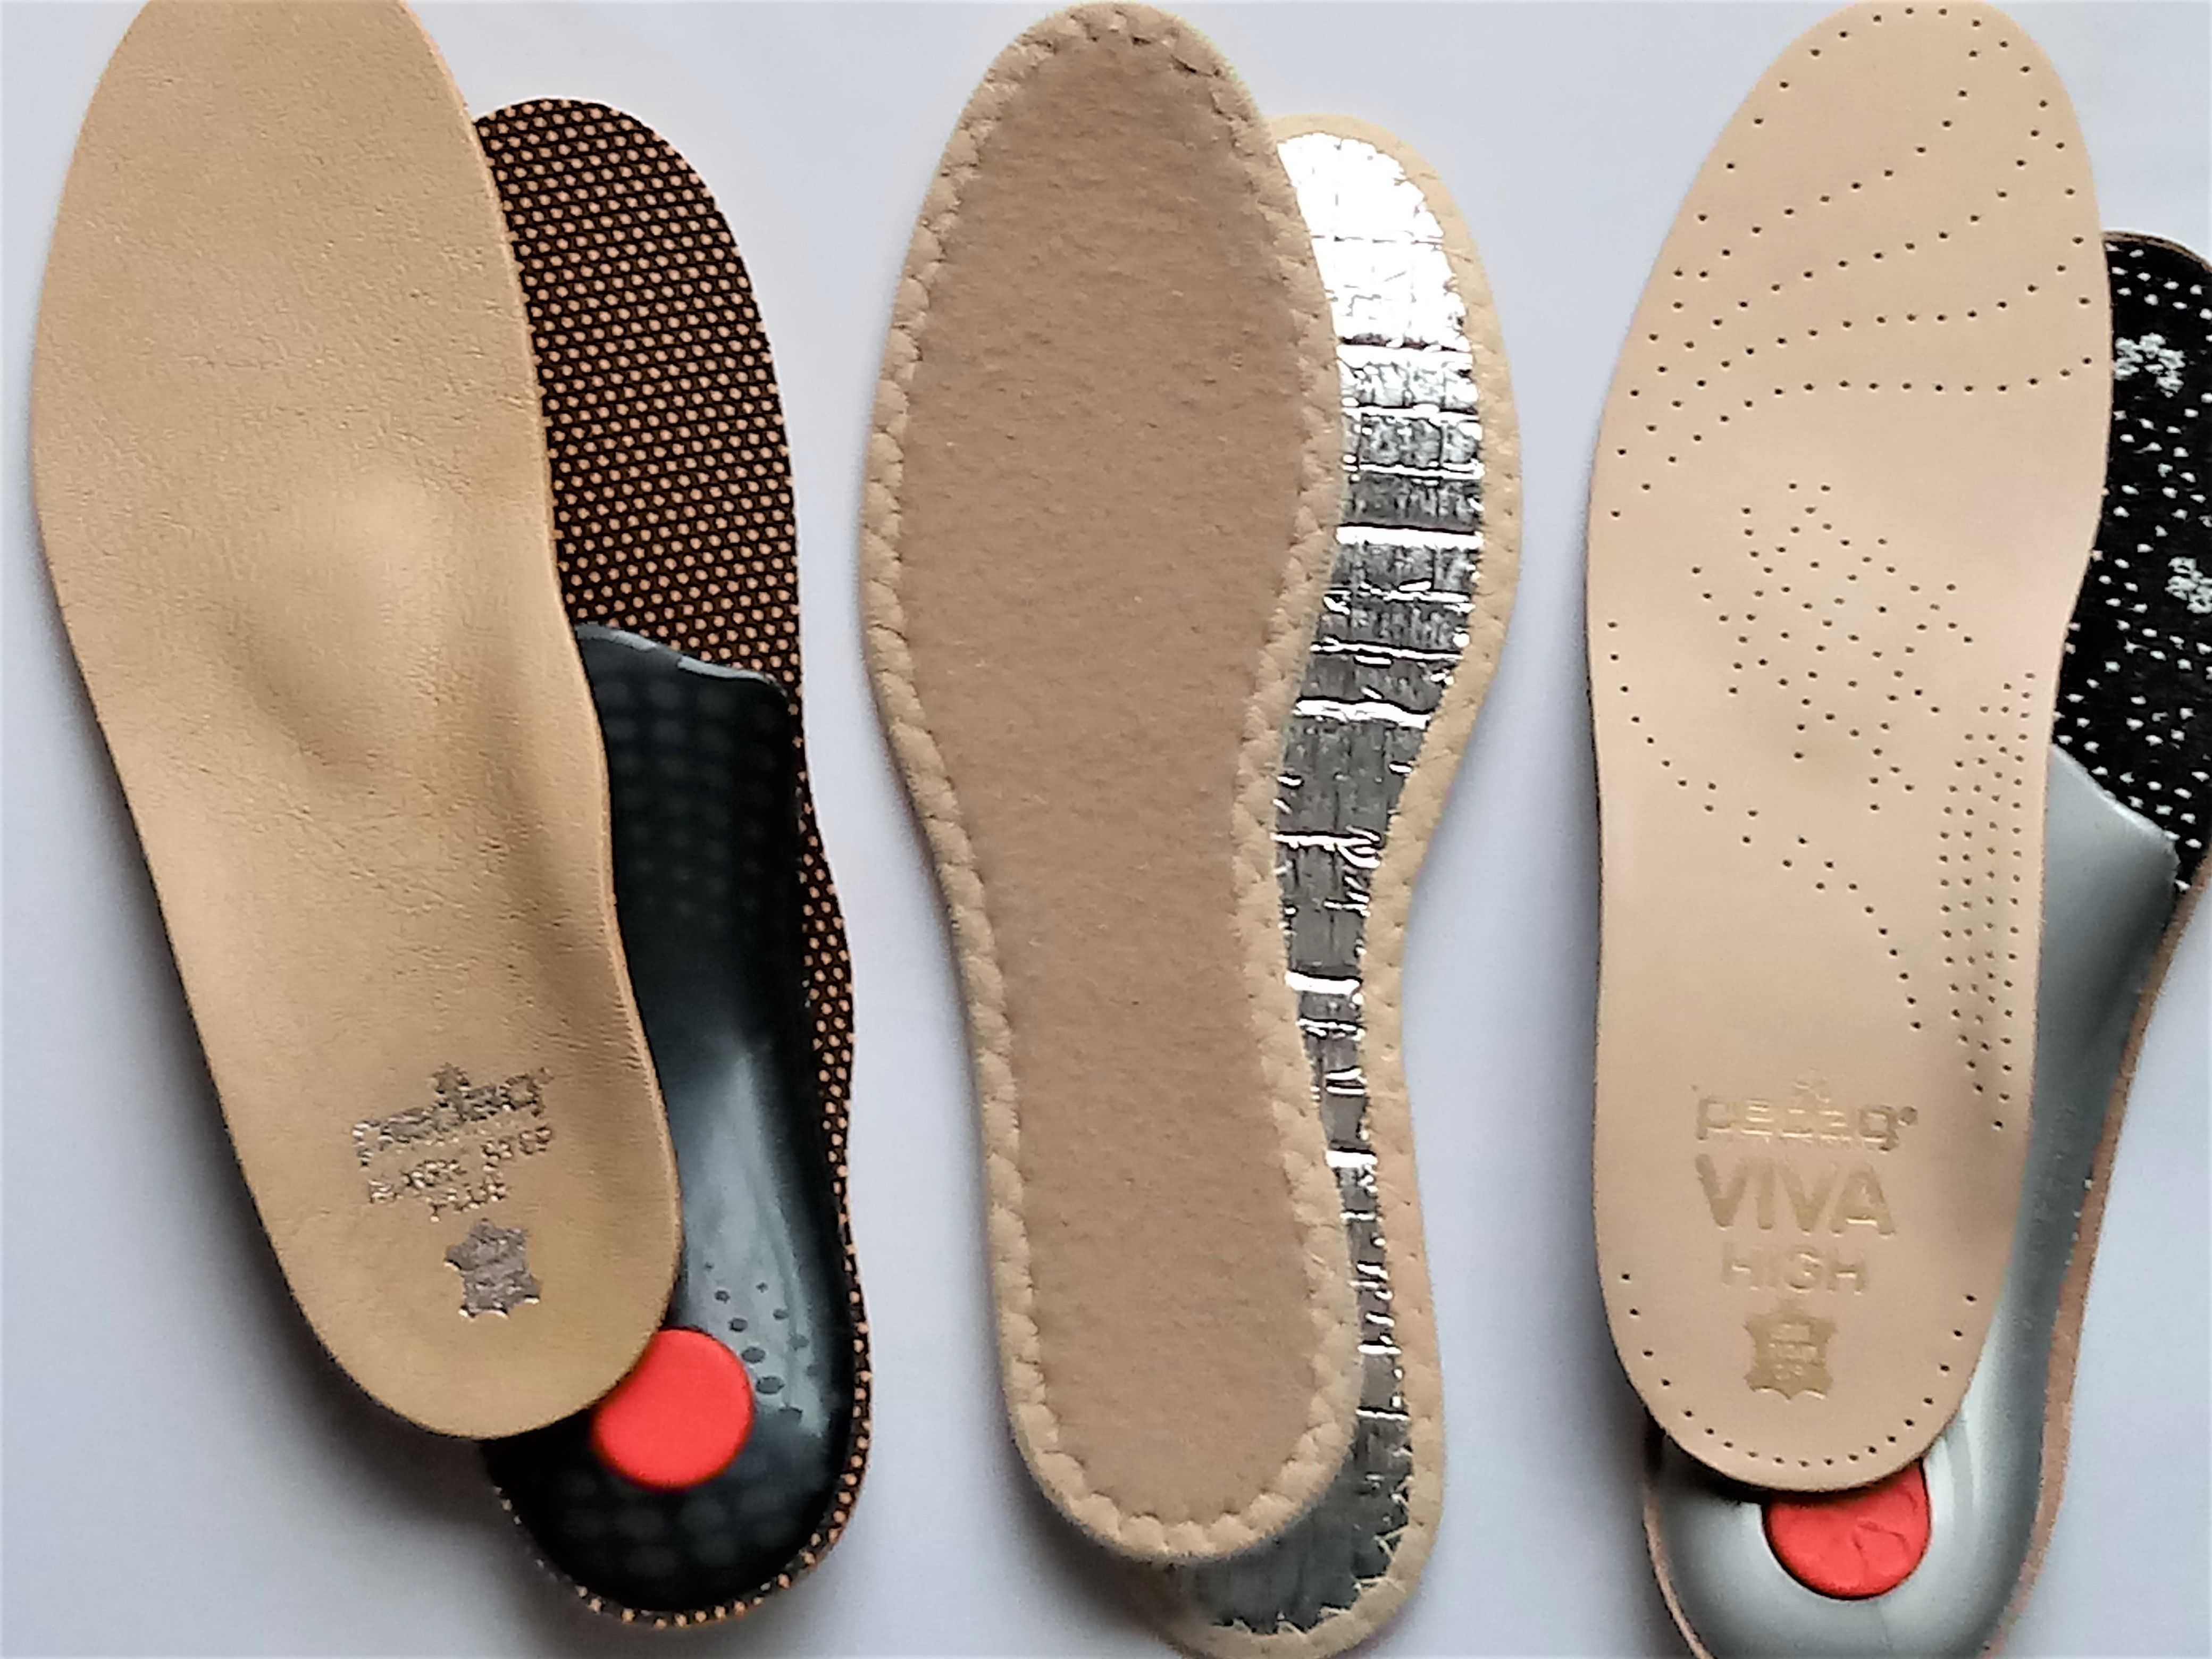 Amazing selection of shoe inserts and insoles for plantar fasciitis